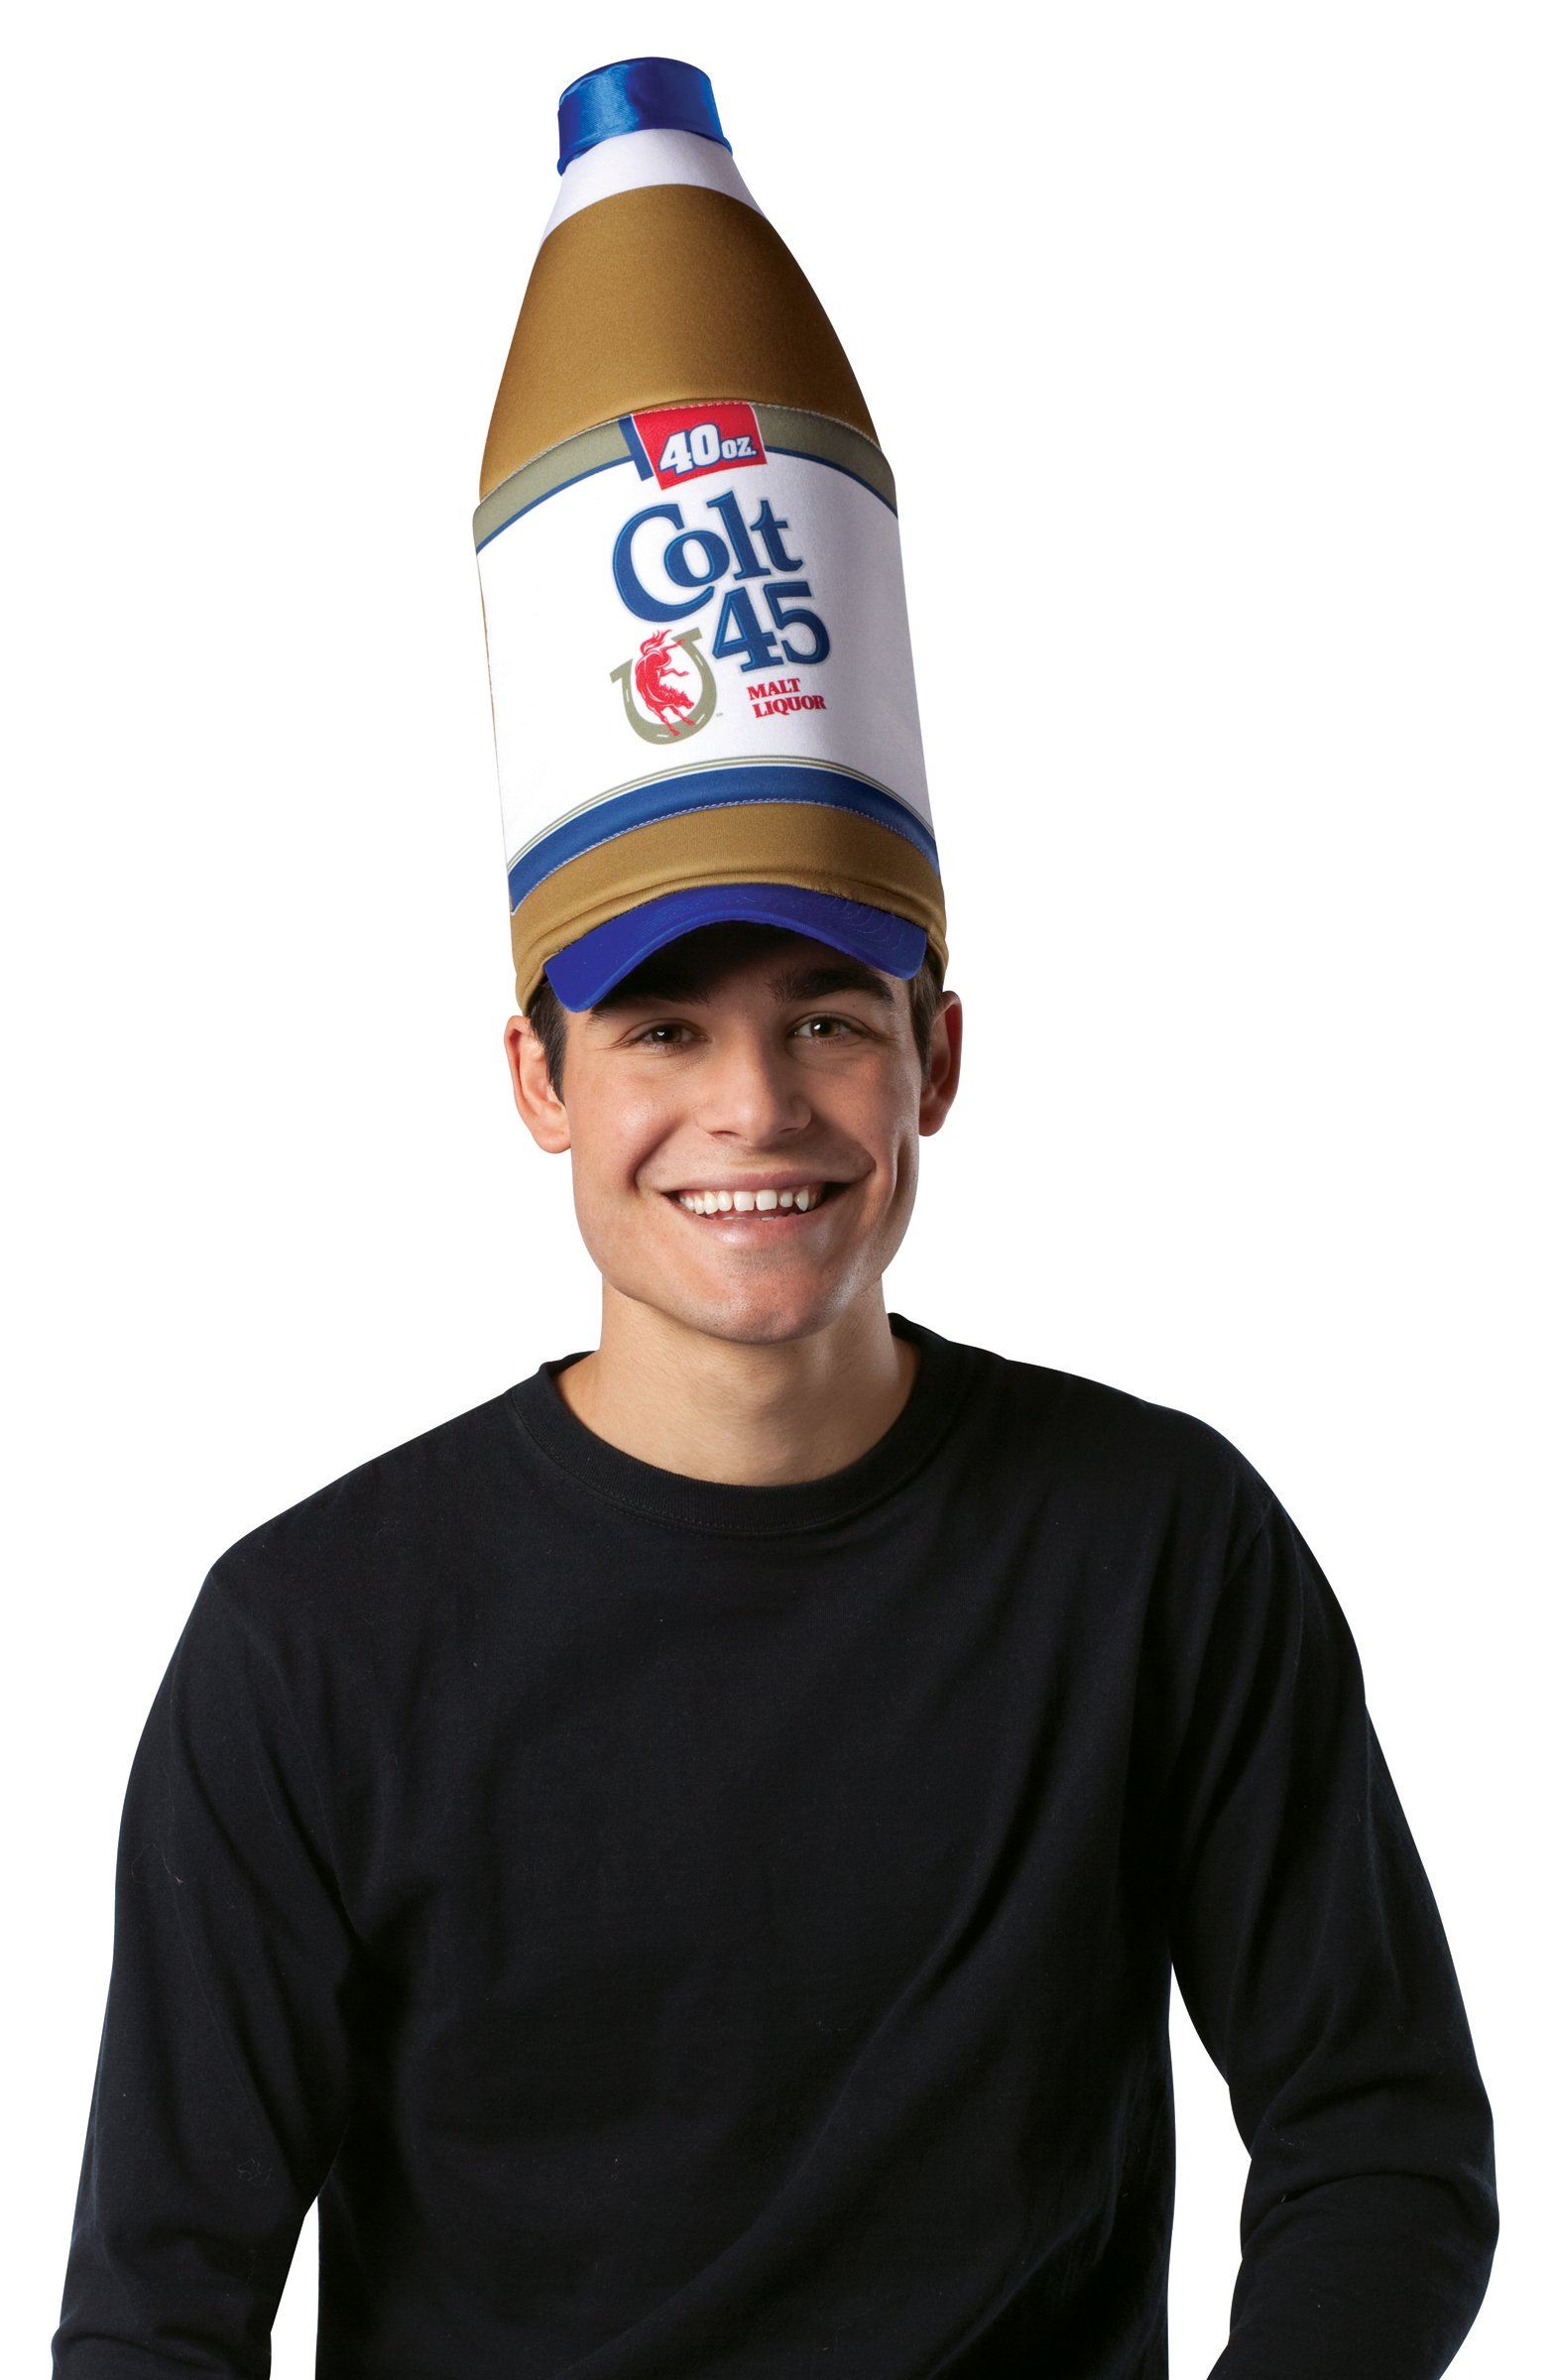 Colt 45 40-Oz. Bottle Hat (Adult)